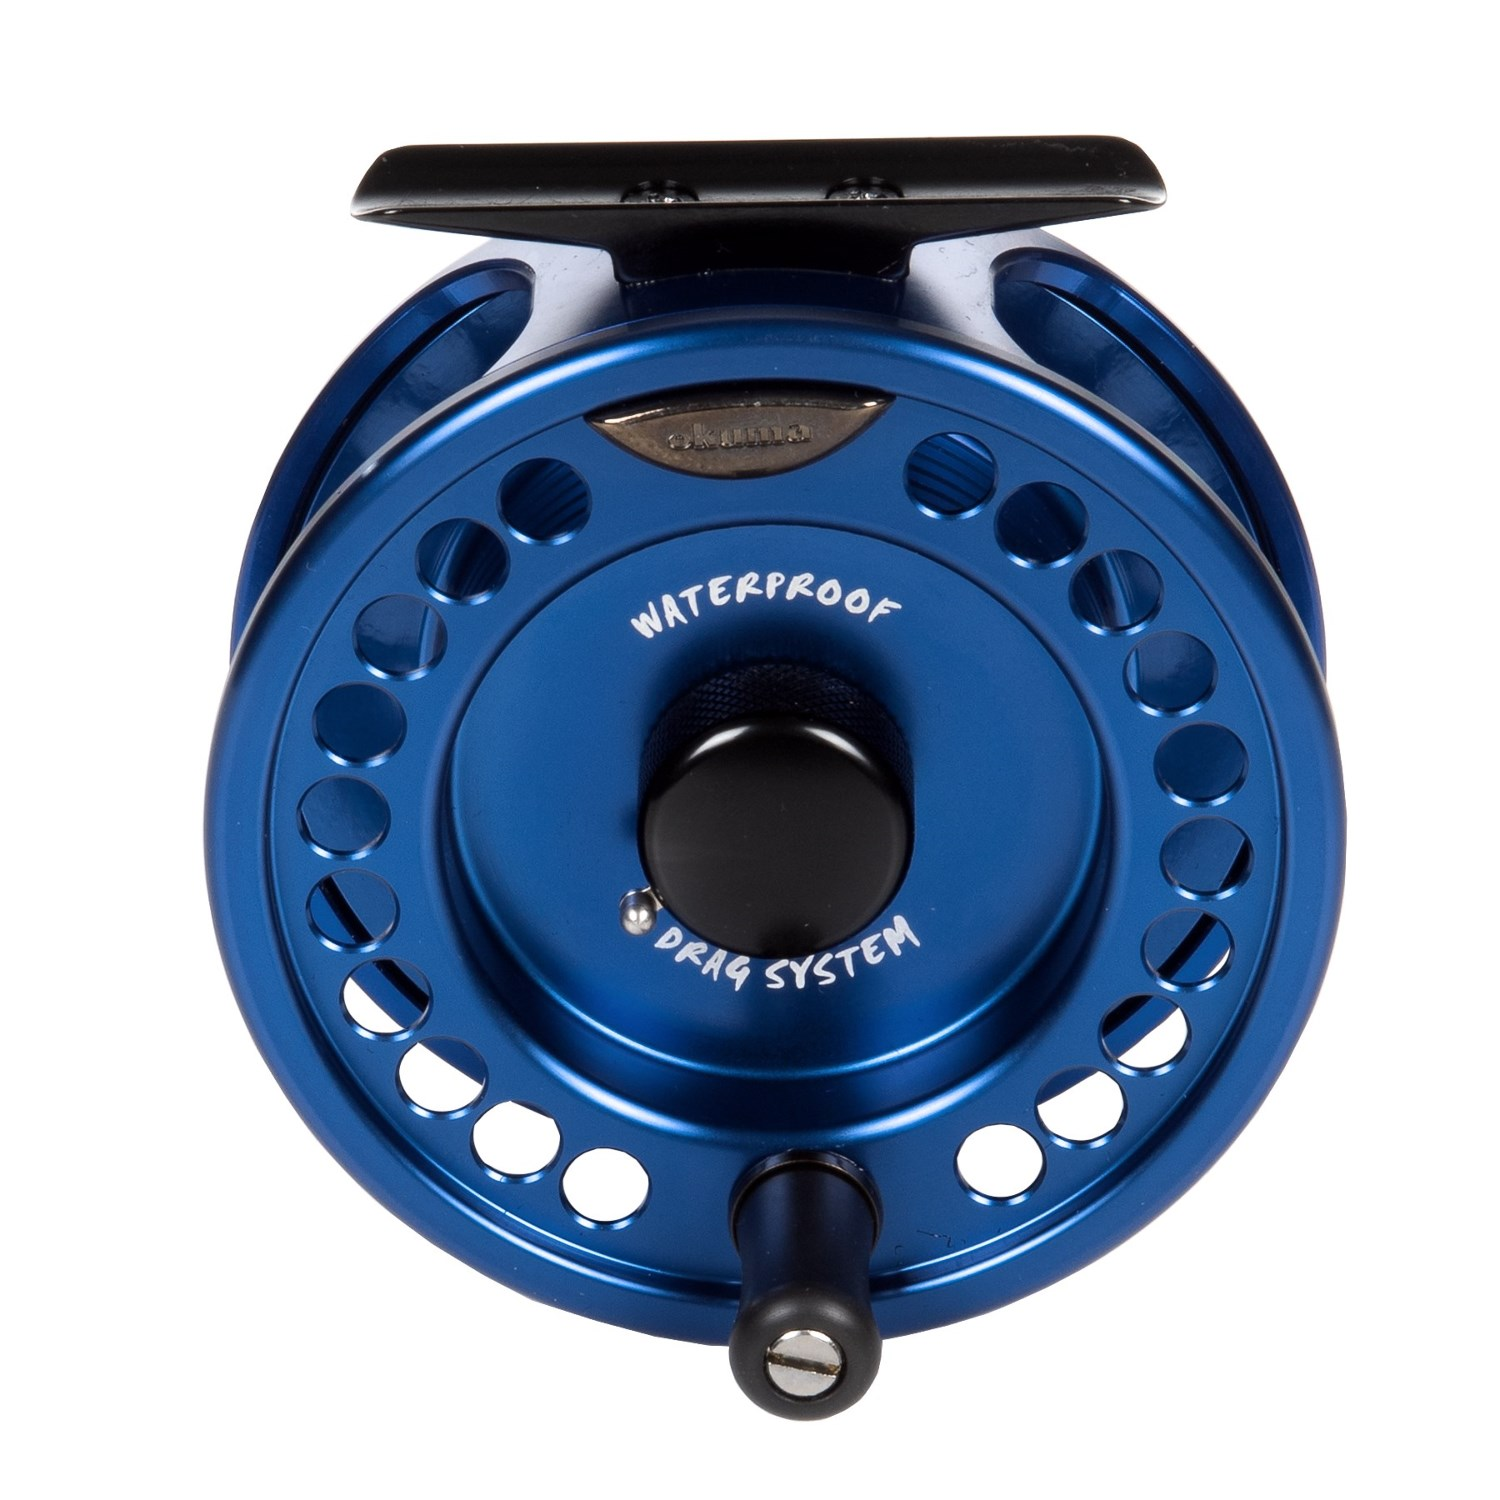 Okuma cedros reel review : Motorcycle license chicago